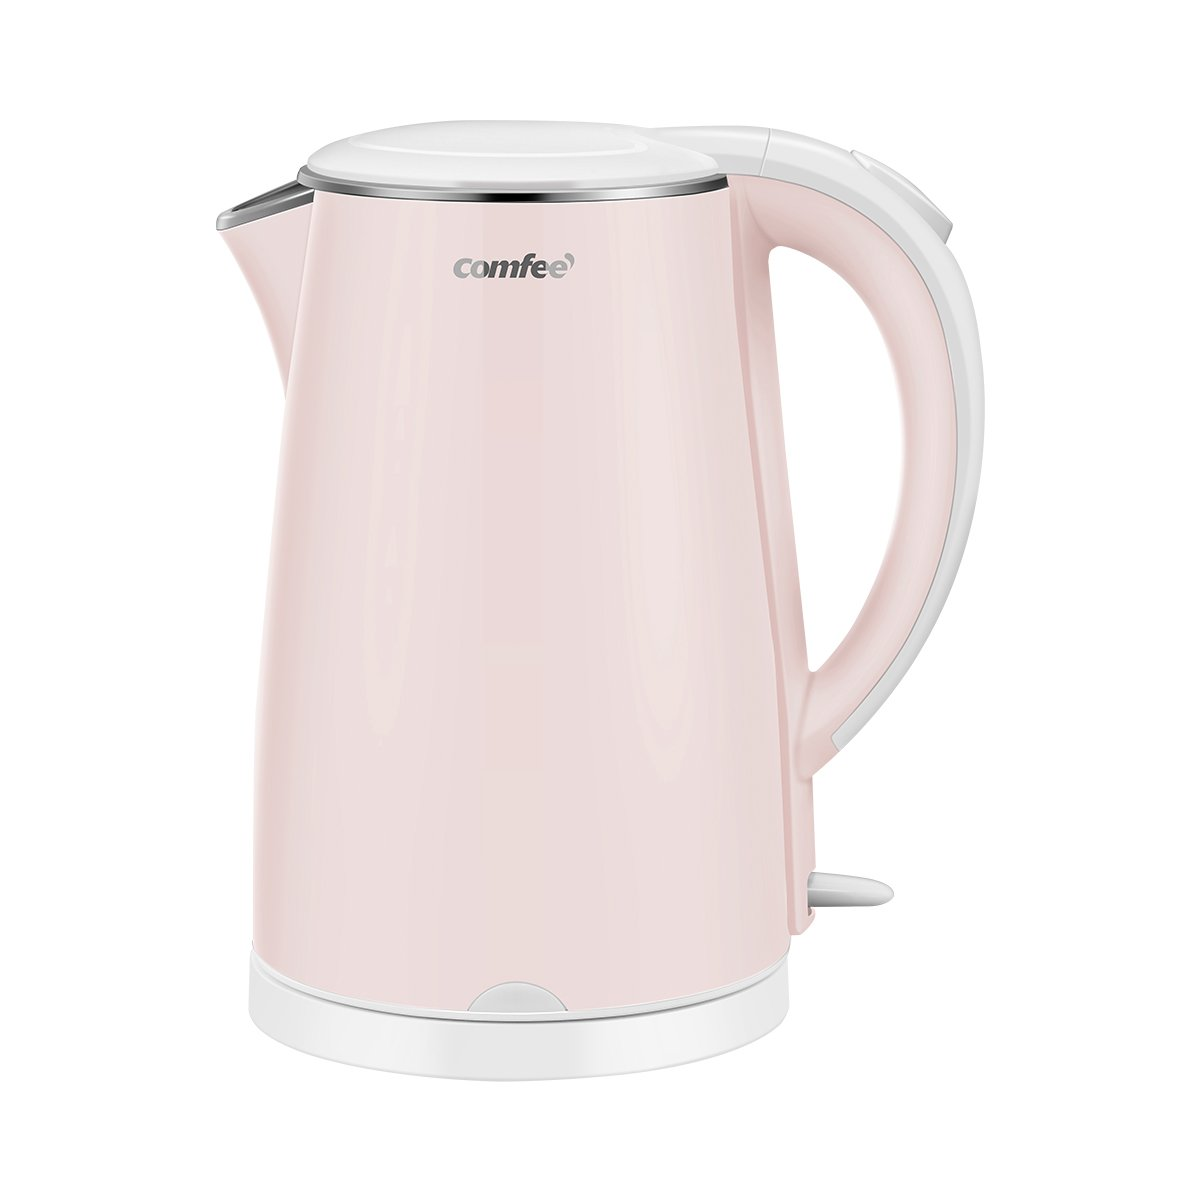 COMFEE' MK-HJ1705a1 Electric Kettle Teapot 1.7 Liter Fast Water Heater Boiler 1500W BPA-Free, Quiet Boil & Cool Touch Series, Auto Shut-Off and Boil Dry Protection, 1.7L, Baby Pink by COMFEE' (Image #2)